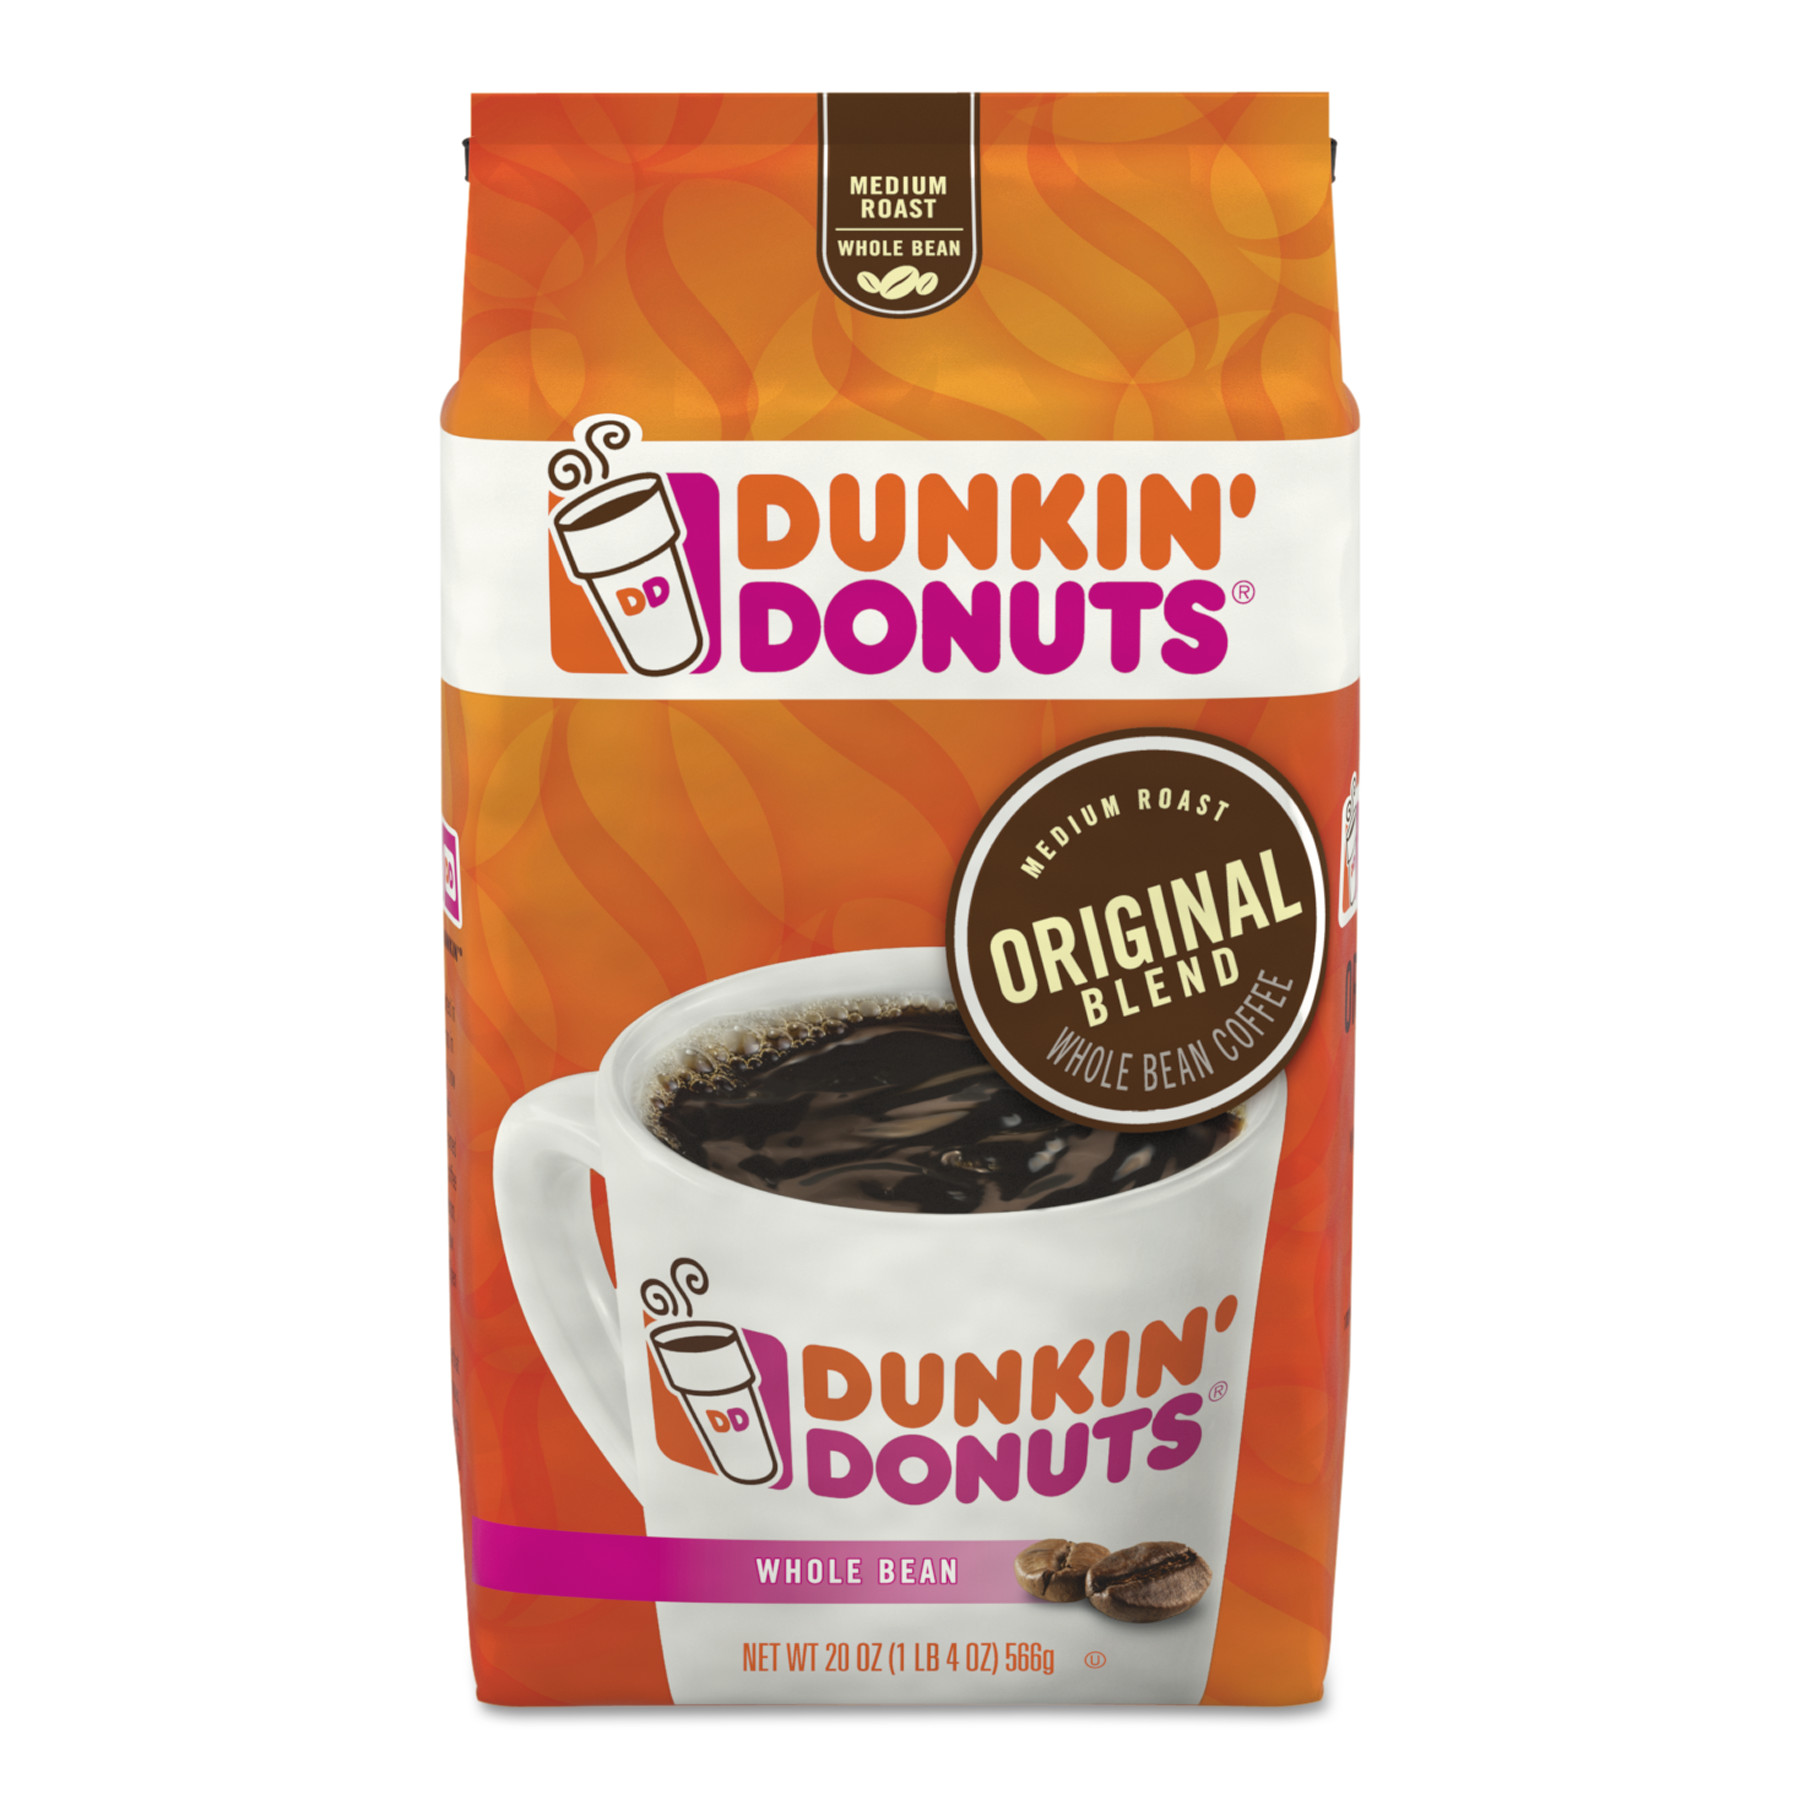 Dunkin Donuts Original Blend Coffee, Dunkin WB original, 20 oz